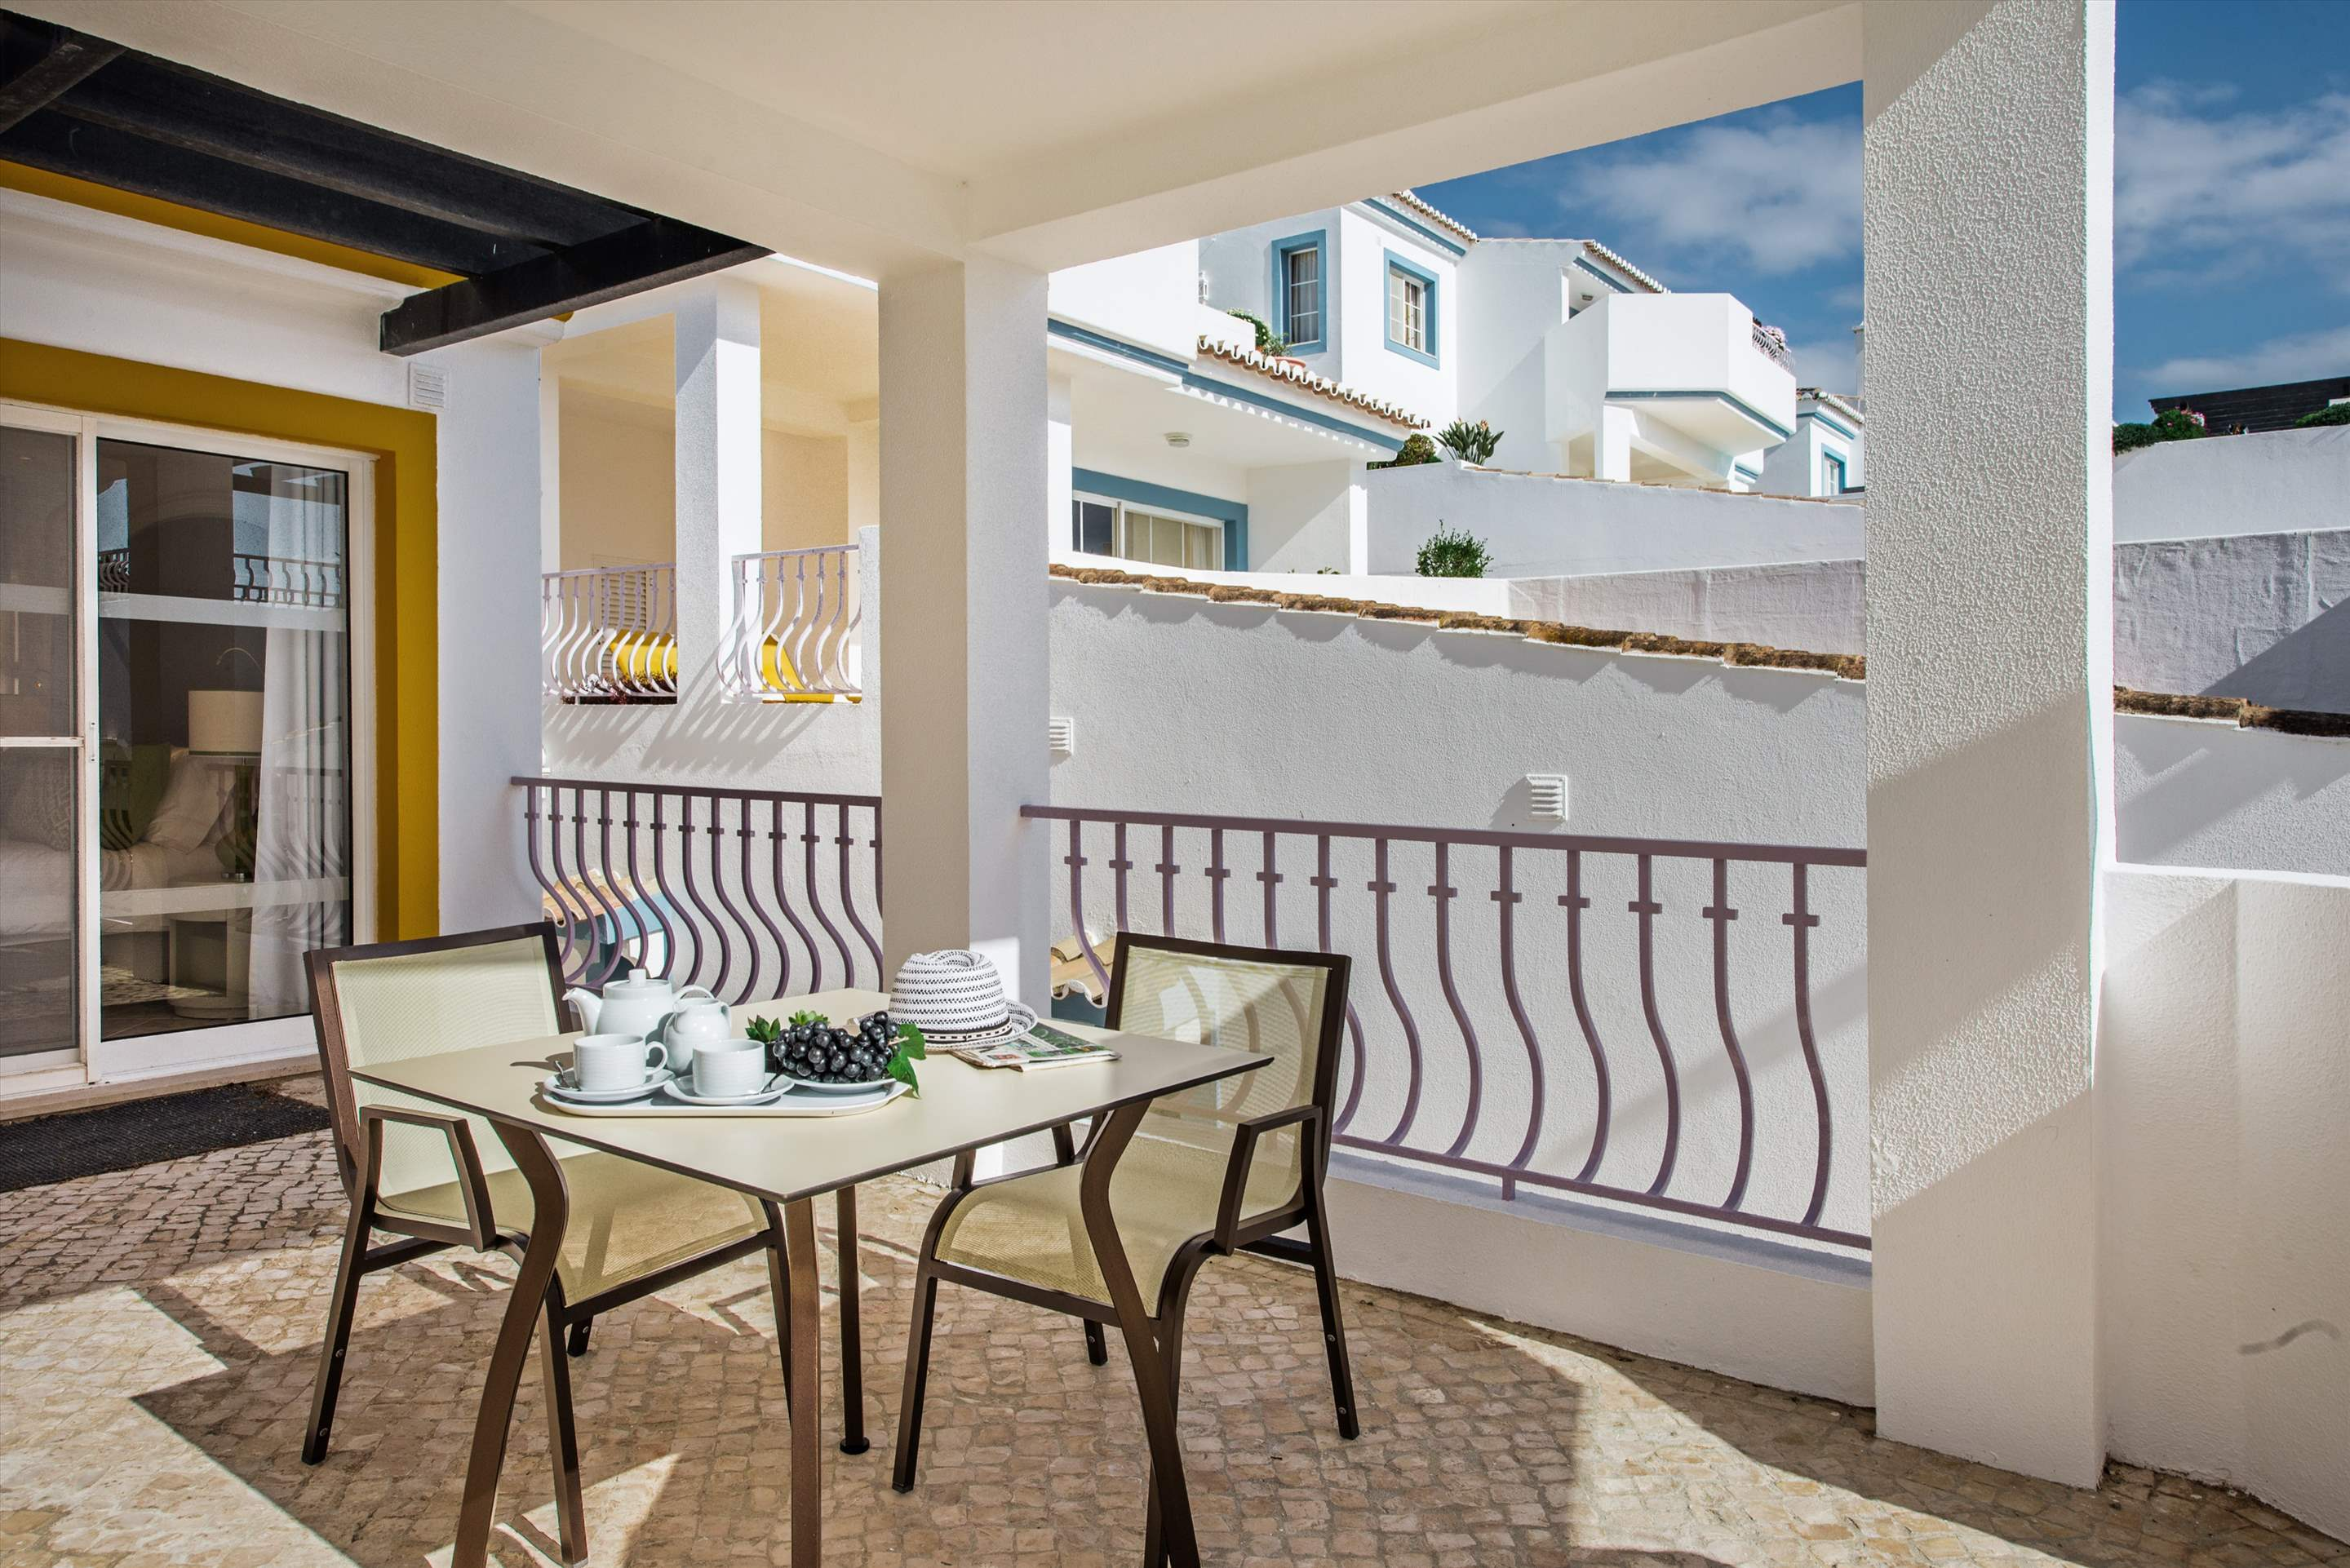 Four Seasons Fairway 2 Bed Hillside Apt -Jacuzzi, Sunday Arrival, 2 bedroom villa in Four Seasons Fairways, Algarve Photo #13